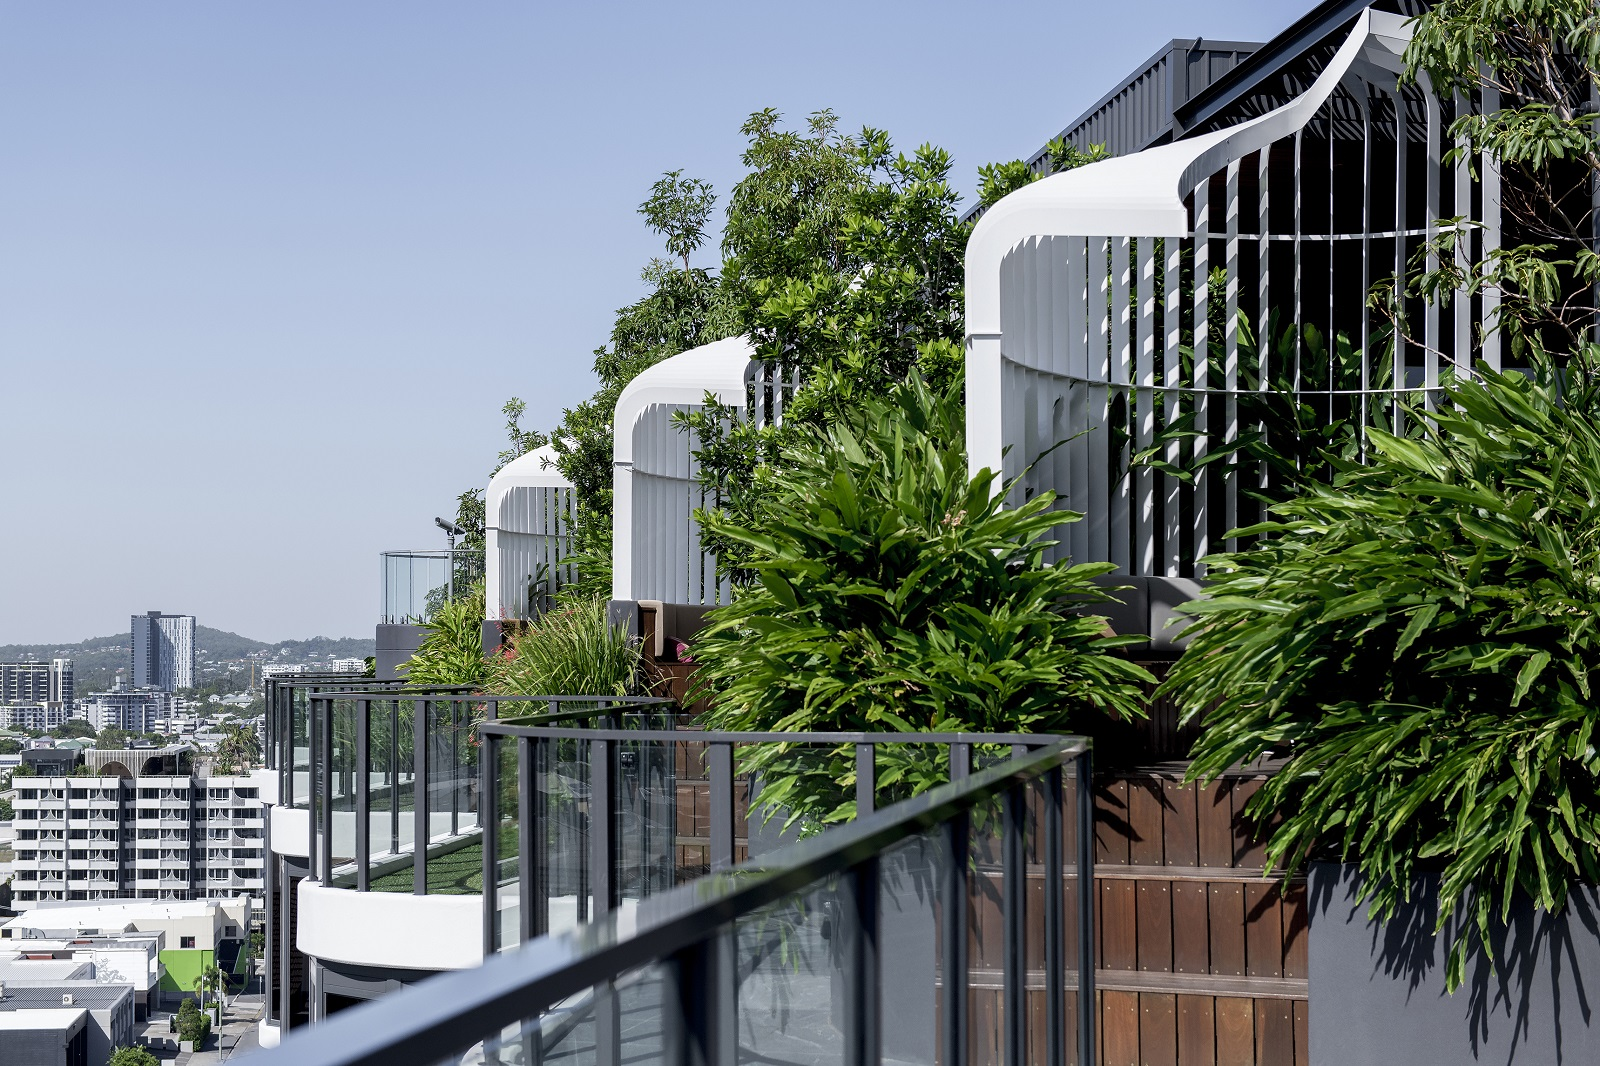 Valencia Residences, Kangaroo Point, landscape design by RPS